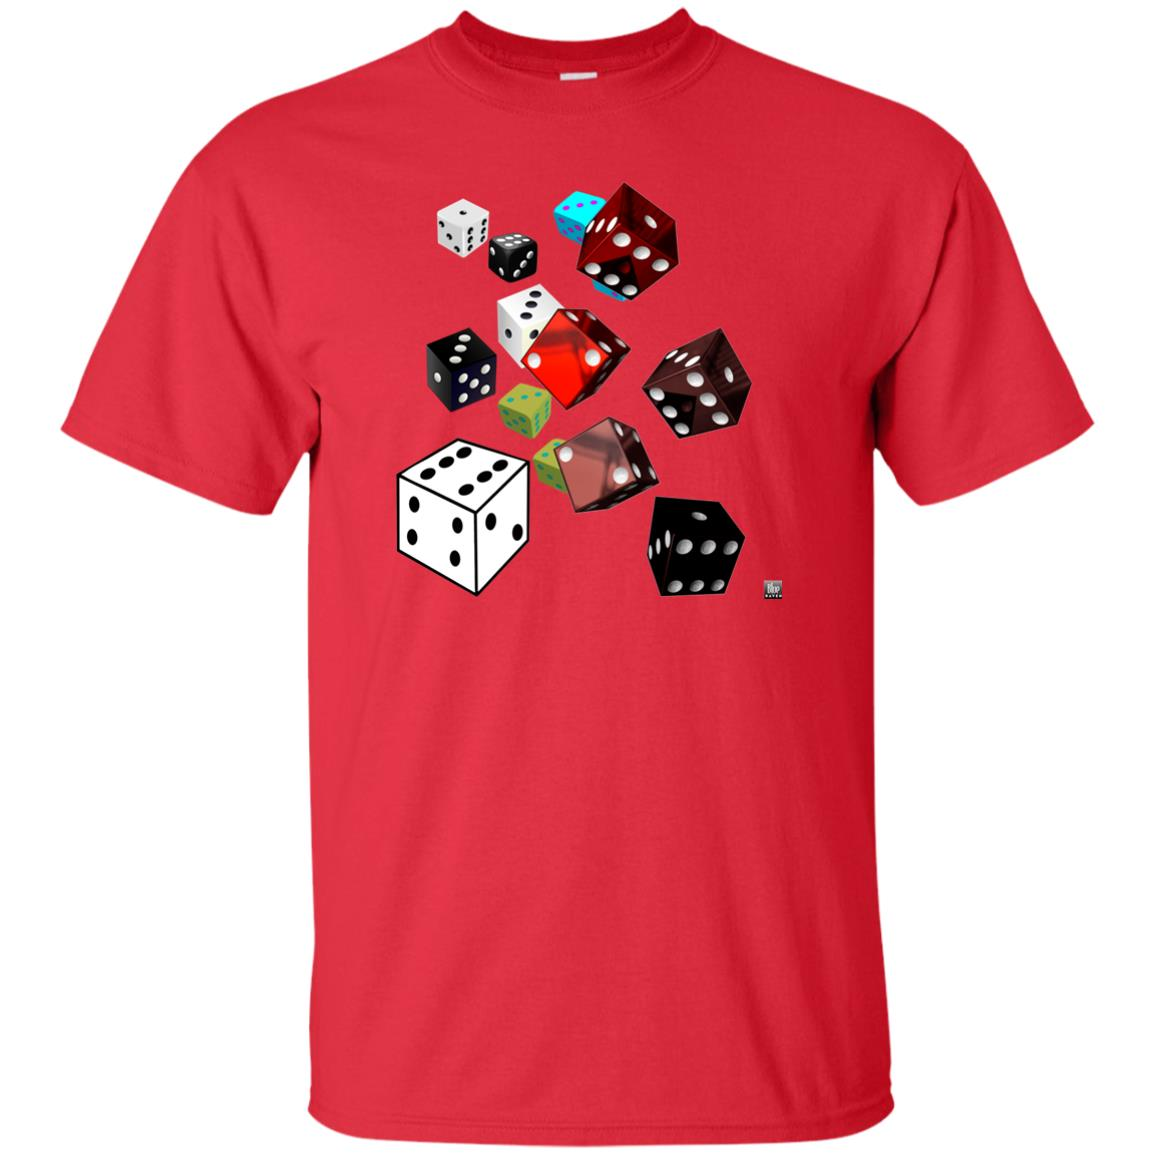 roll of the dice - Men's Classic Fit T-Shirt